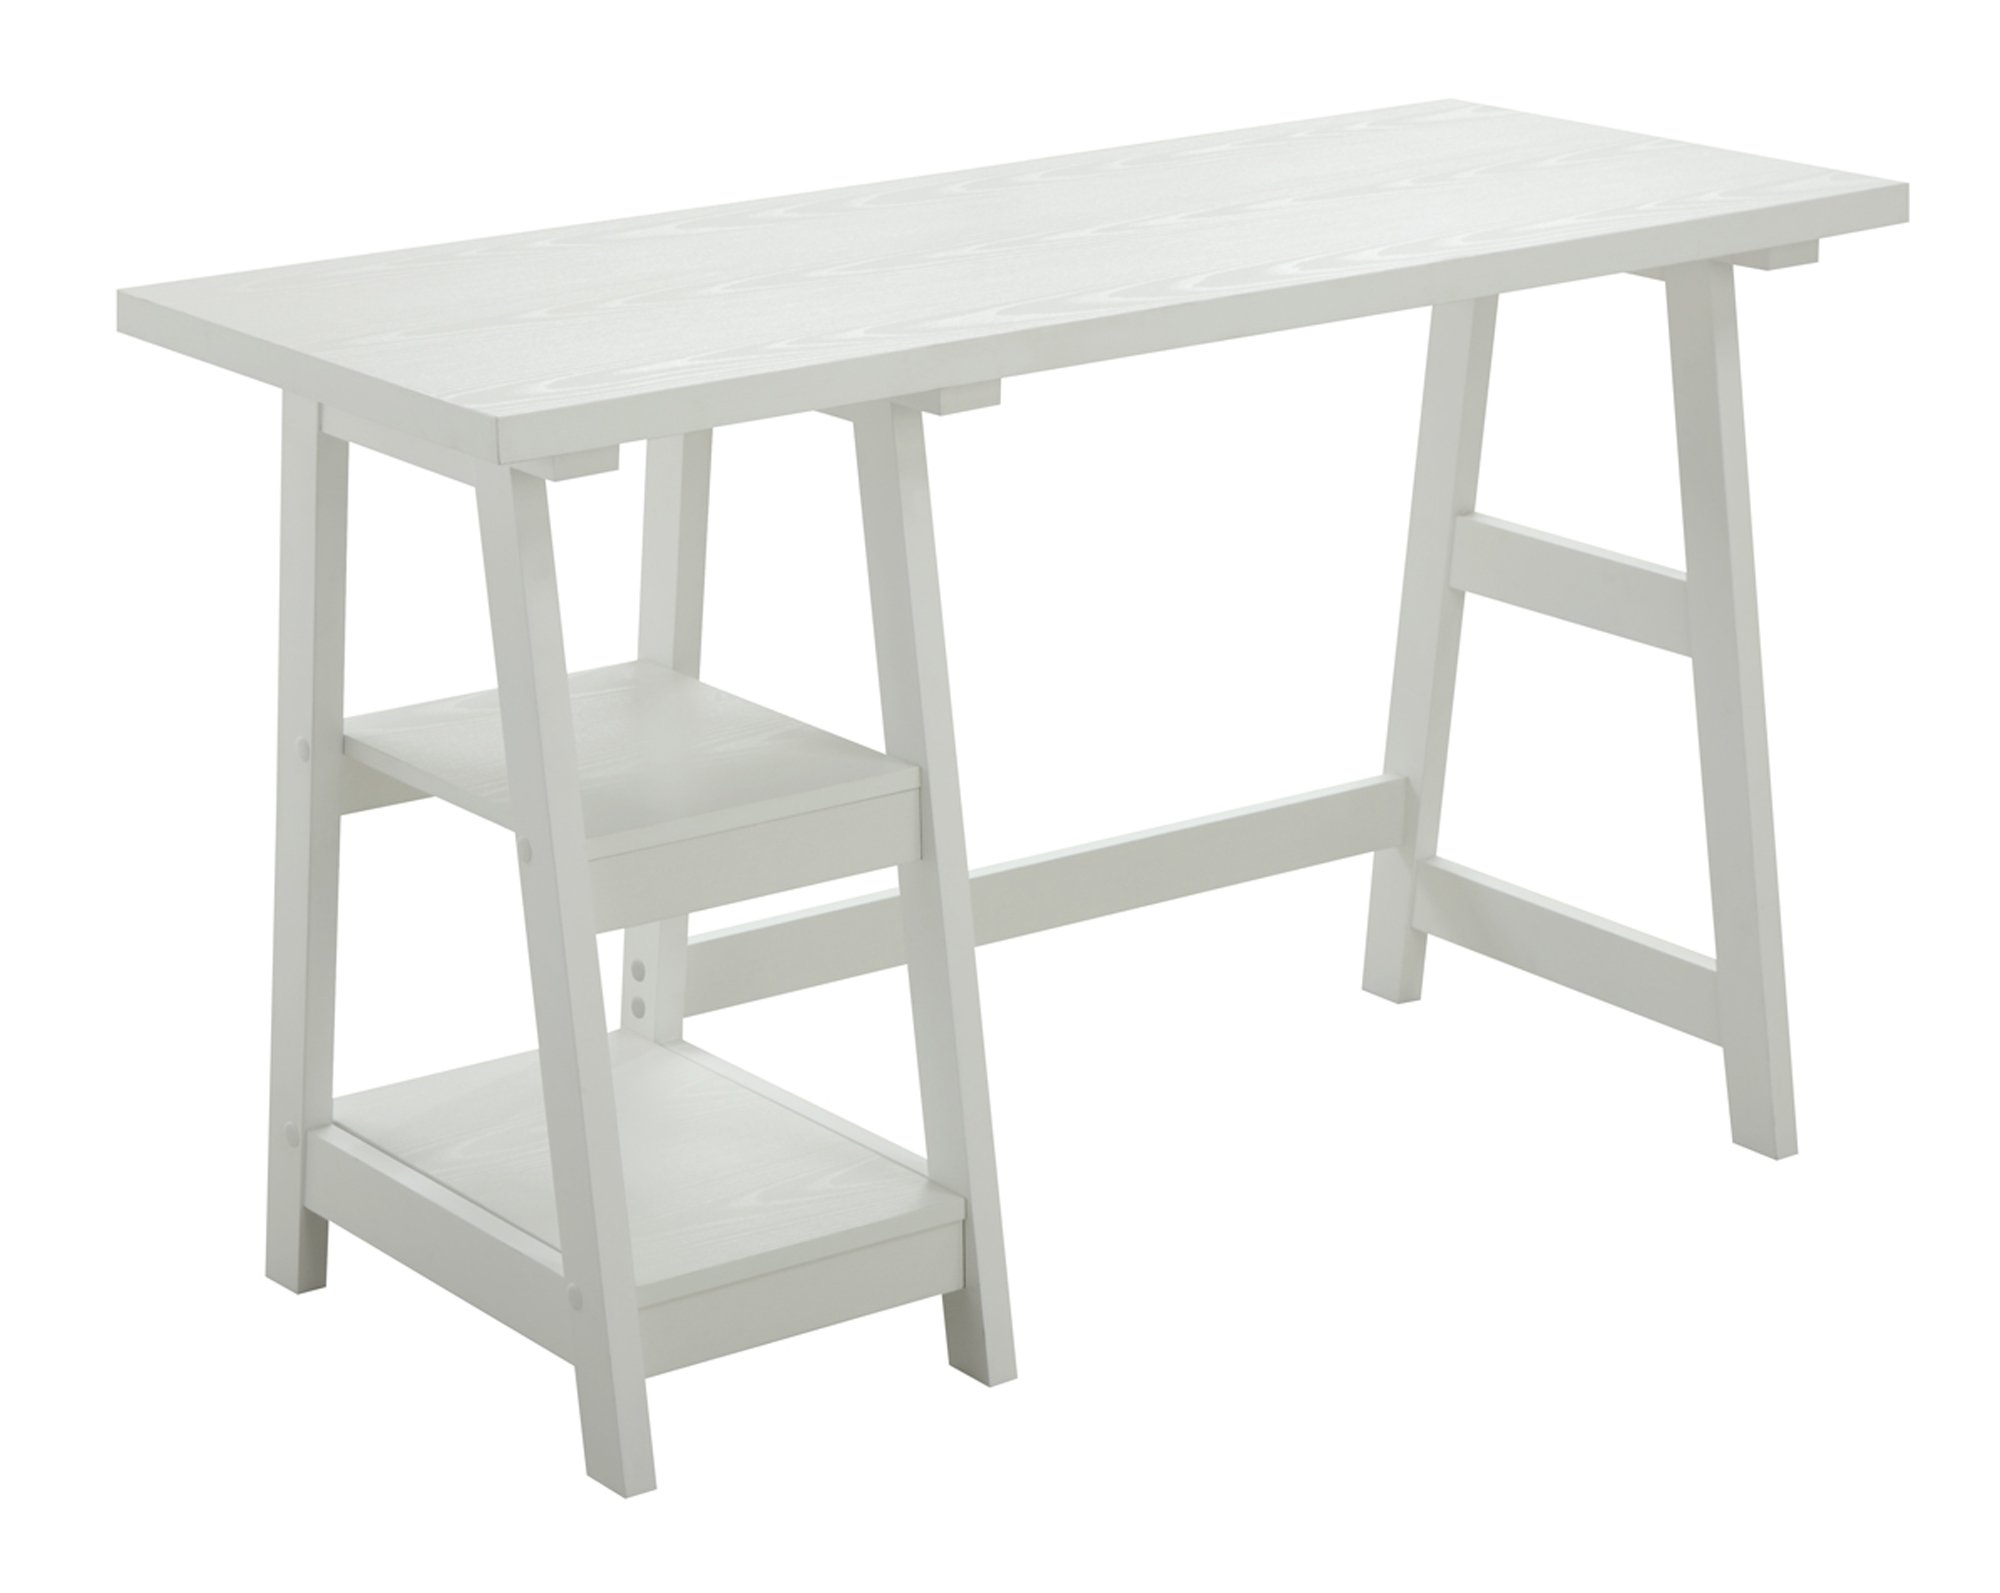 Convenience Concepts 090107W Designs2Go Trestle Desk, White, White by Convenience Concepts